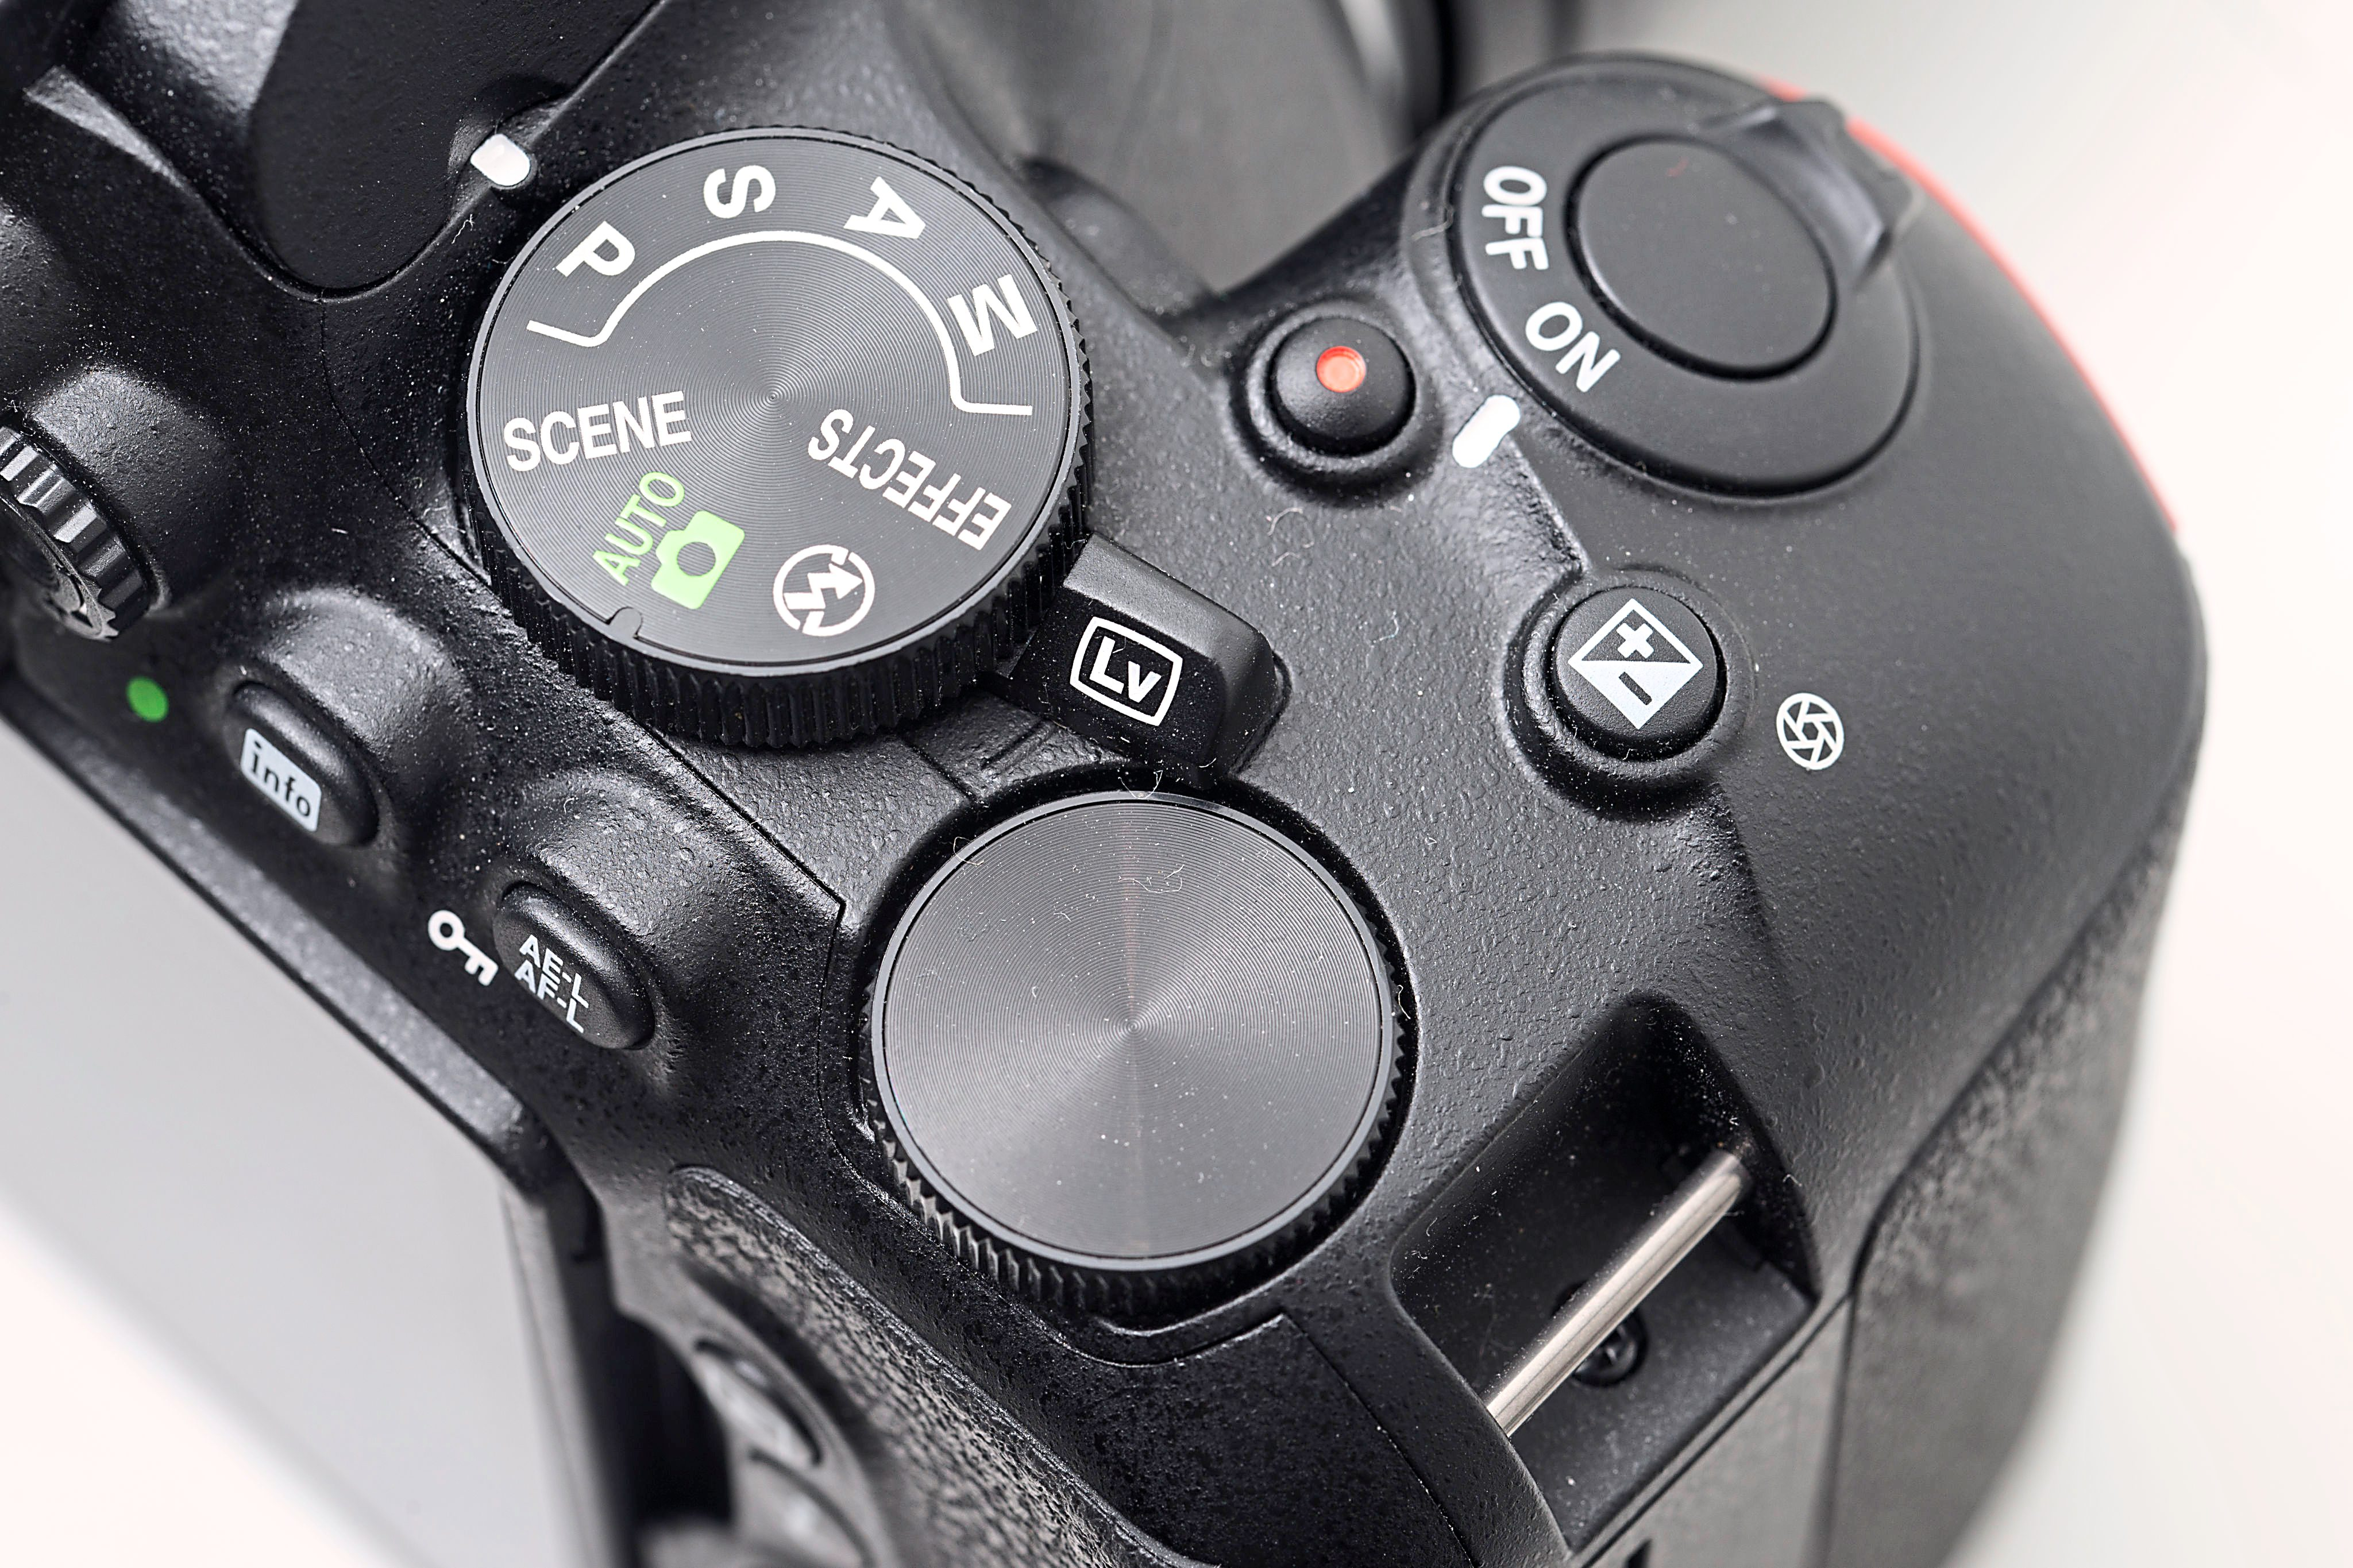 One noticeable change is in the command dial – unlike the D5300, the D5500's is exposed.